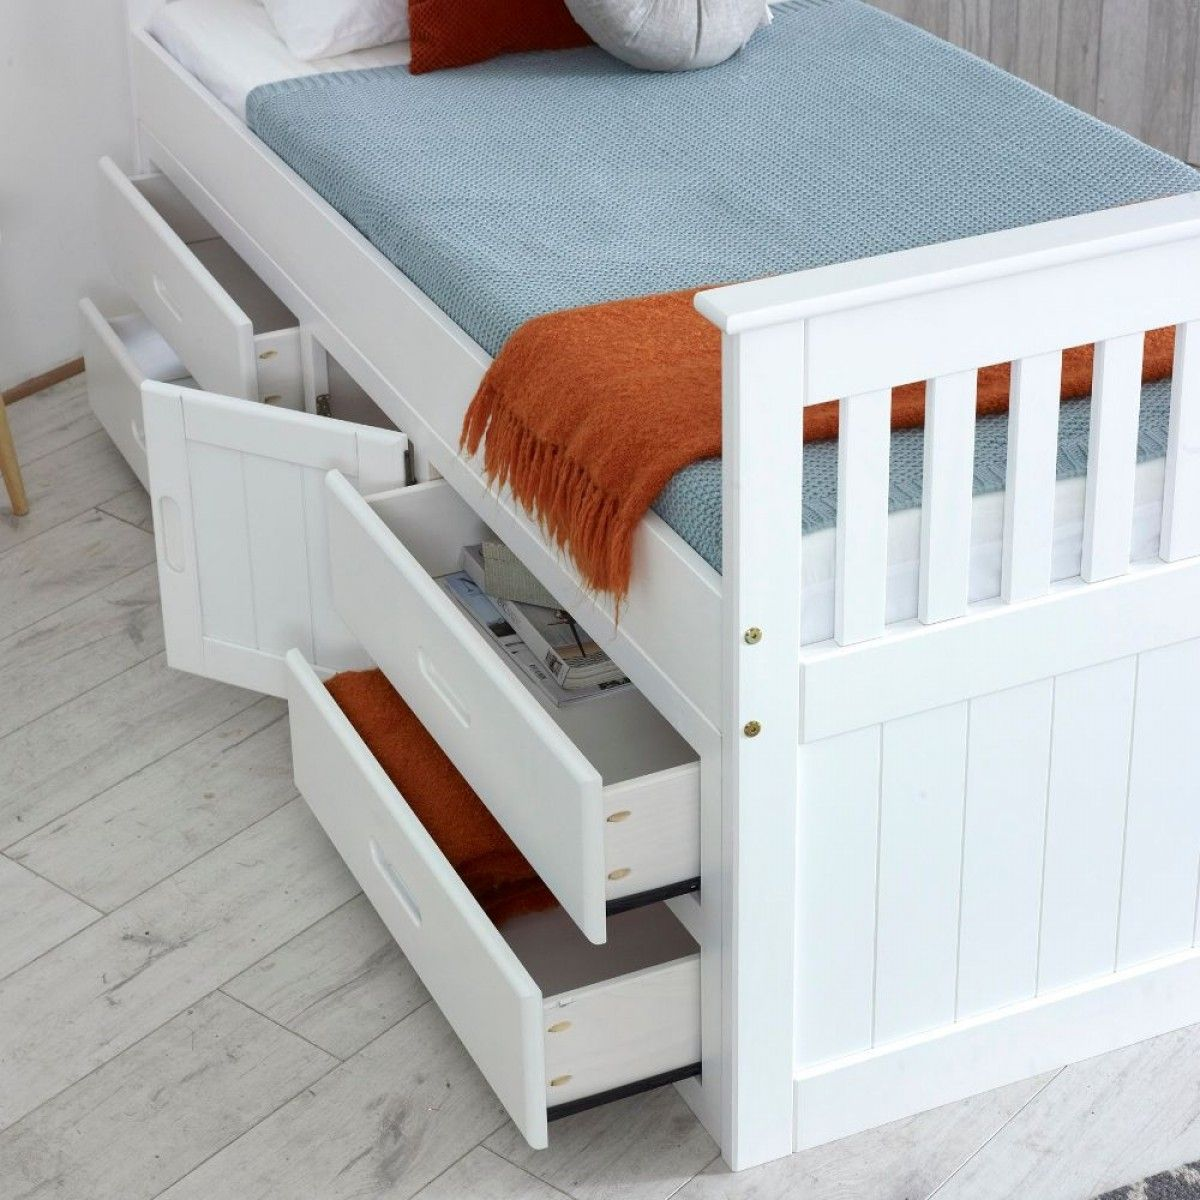 Captains White Wooden Storage Bed Wooden bed with